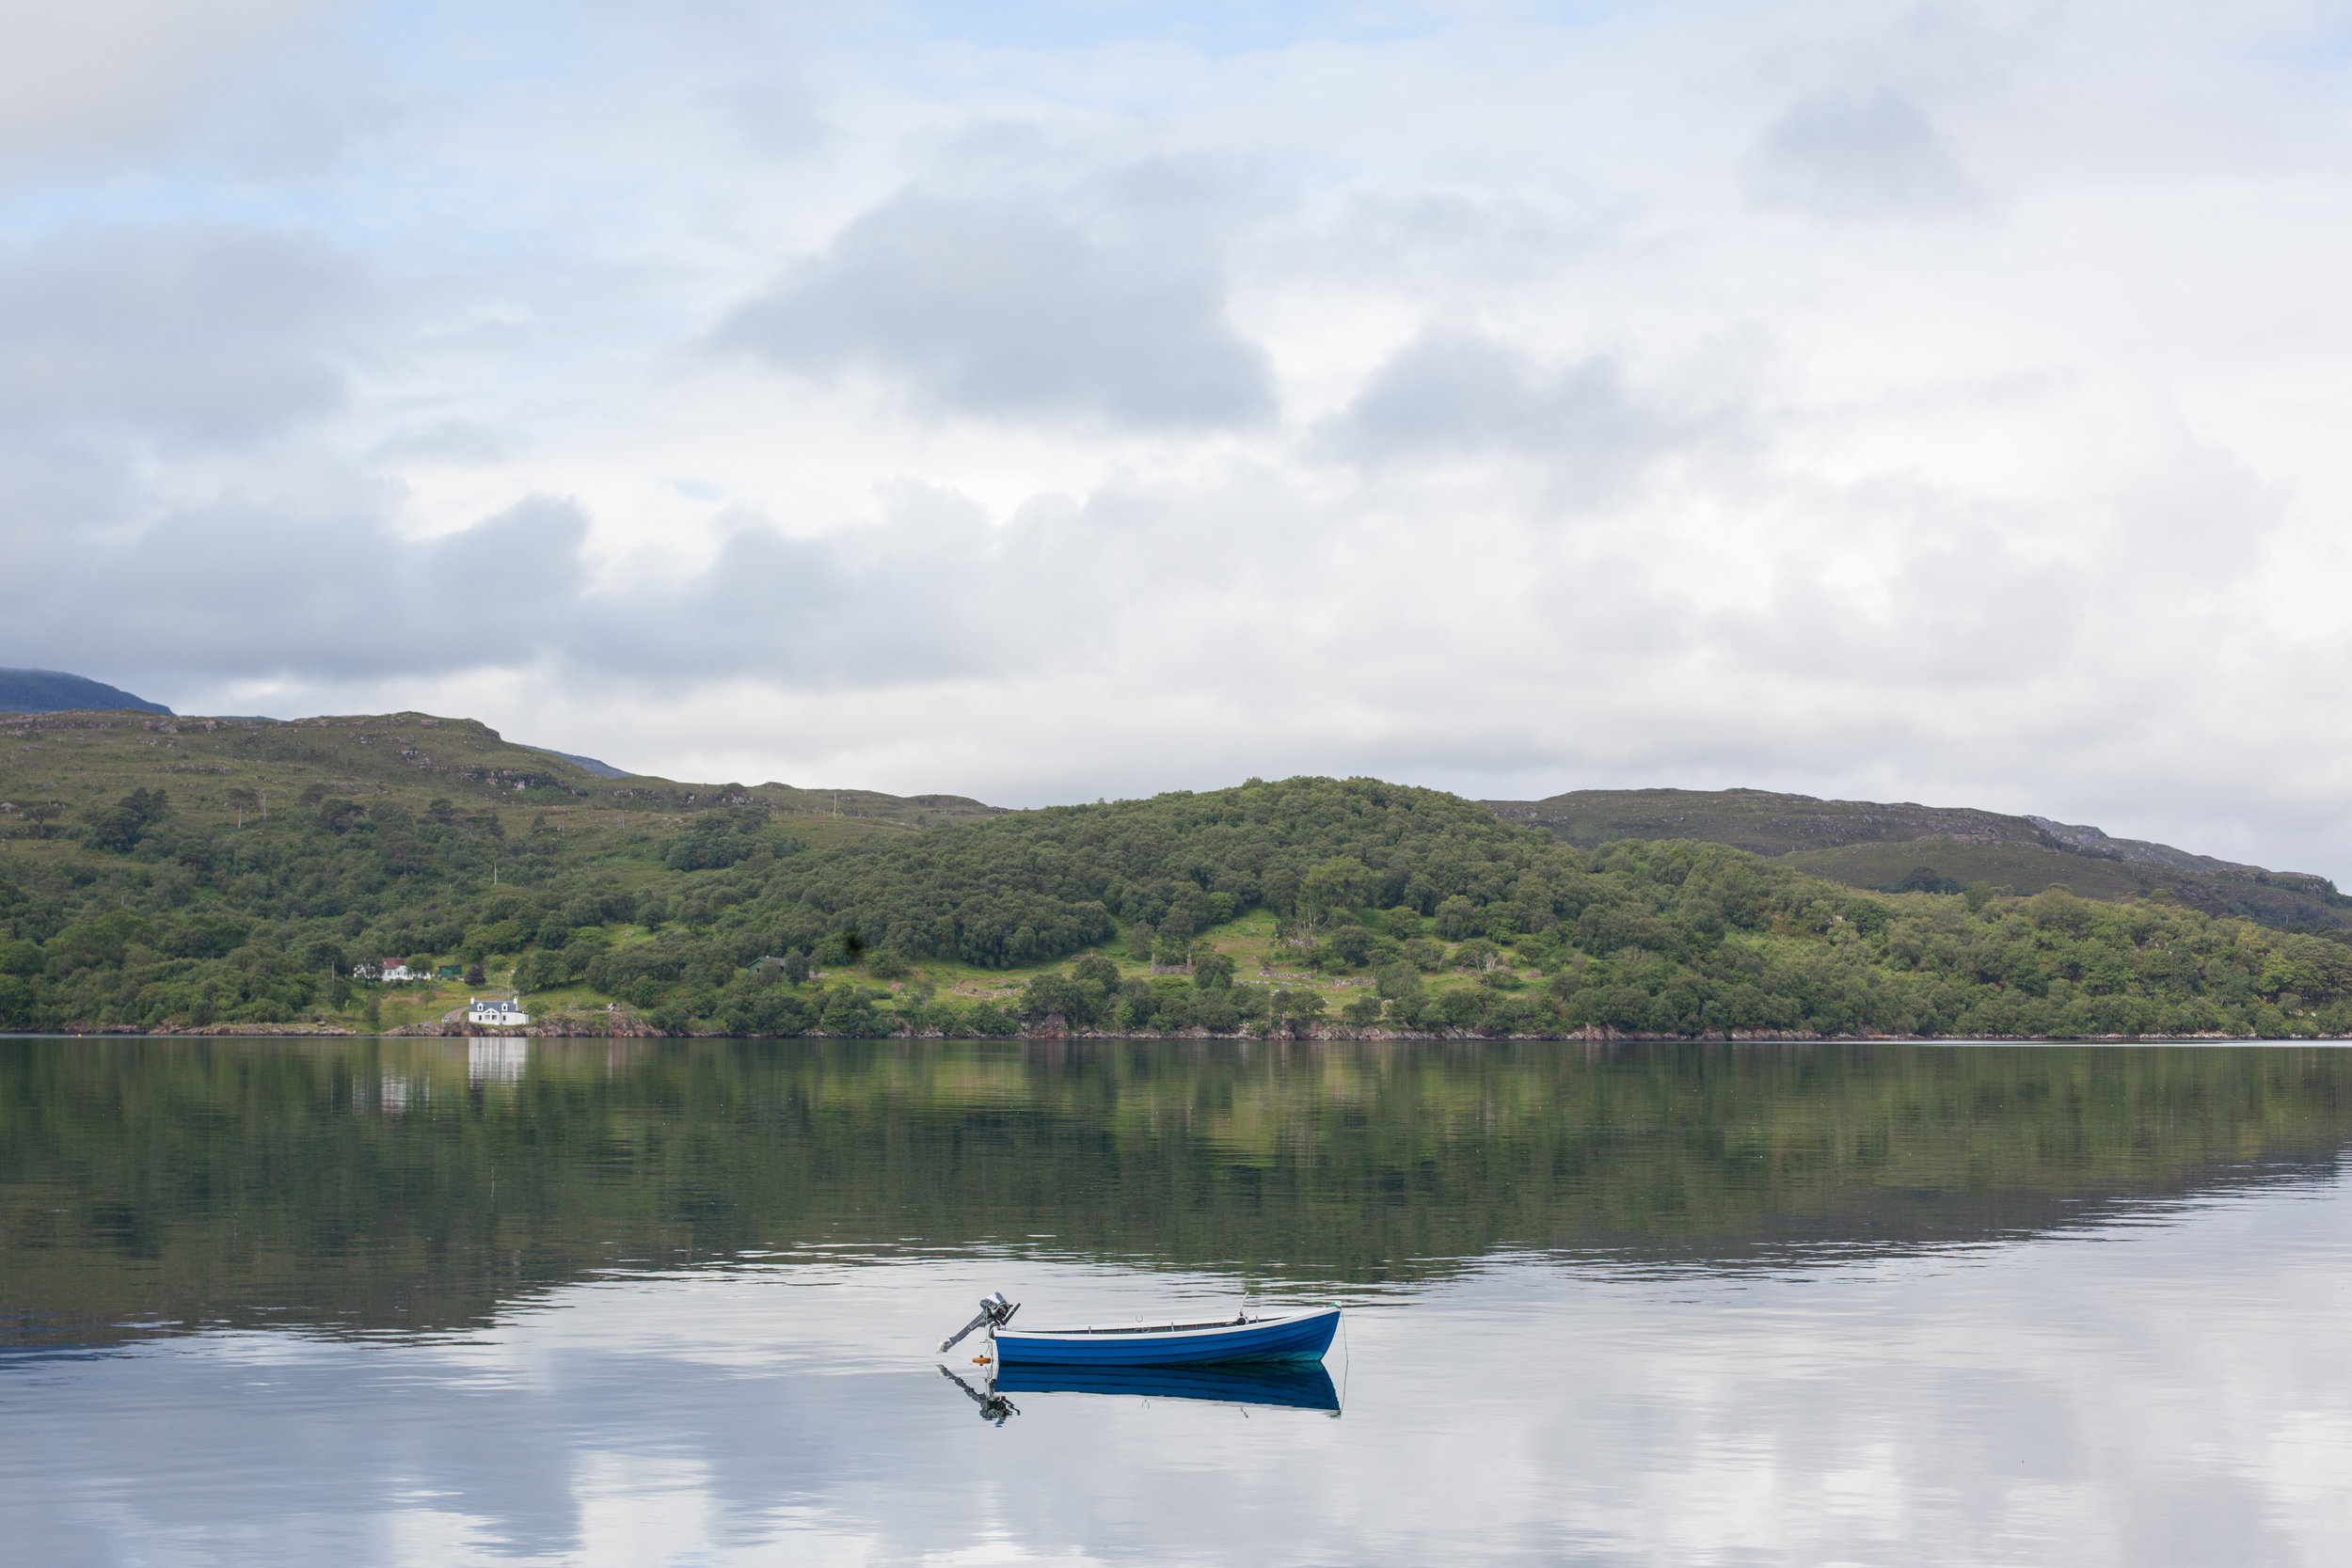 A small boat in this tranquil photo in Scotland.